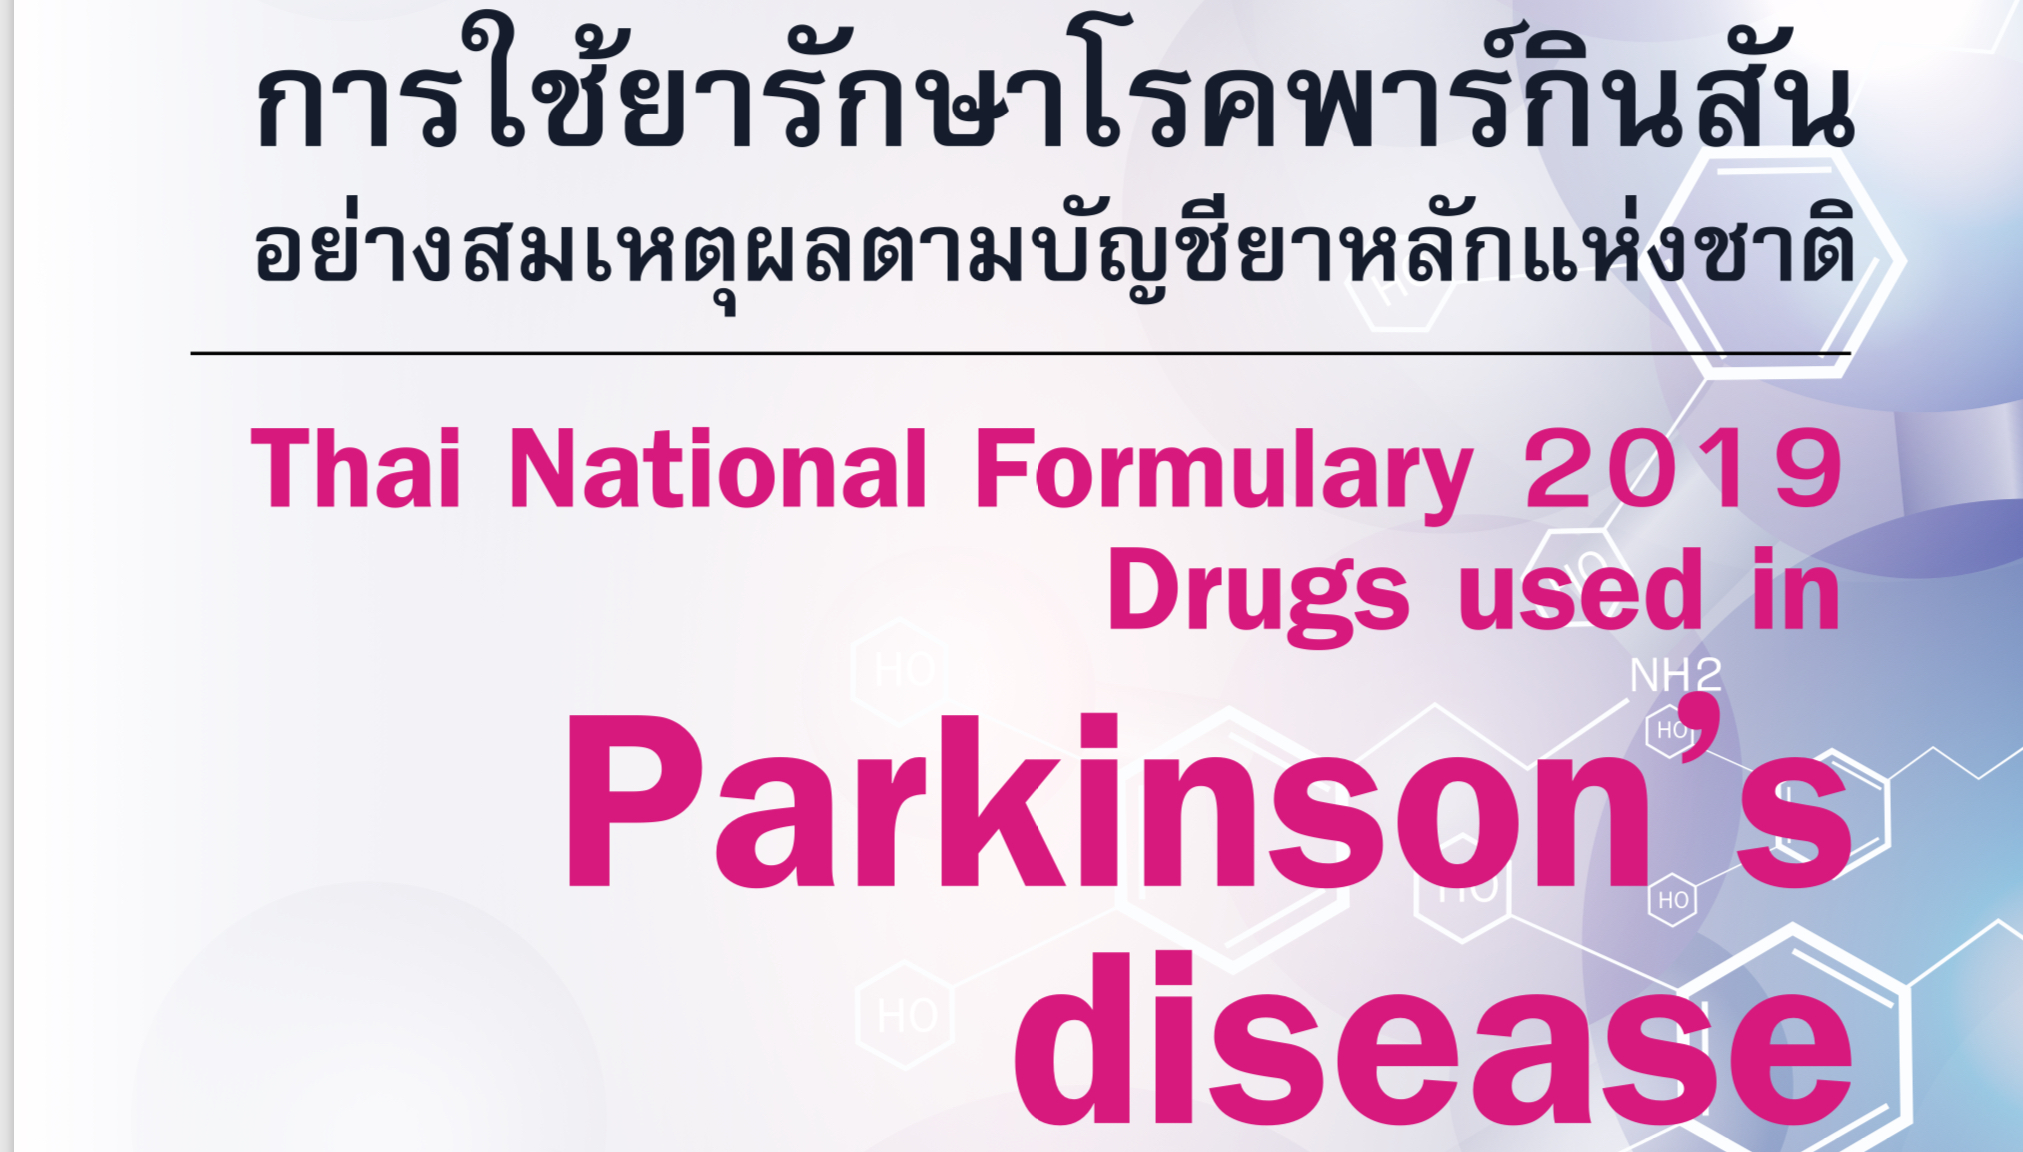 Thai national formulary 2019 drugs used in Parkinson's disease